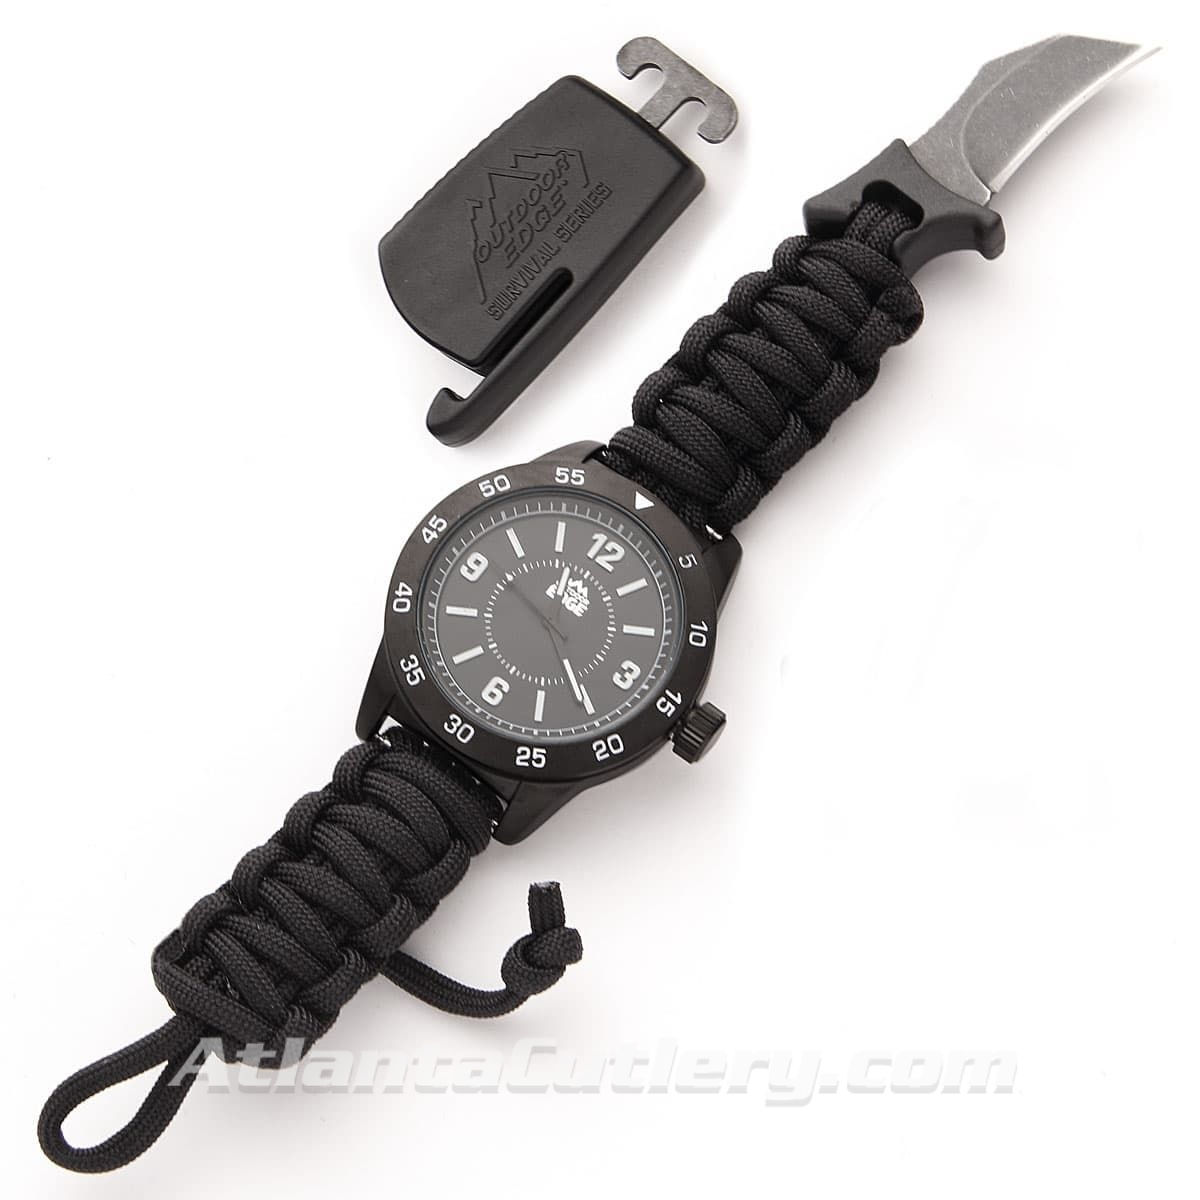 Outdoor Edge ParaClaw CQD Watch with Hawkbill Blade